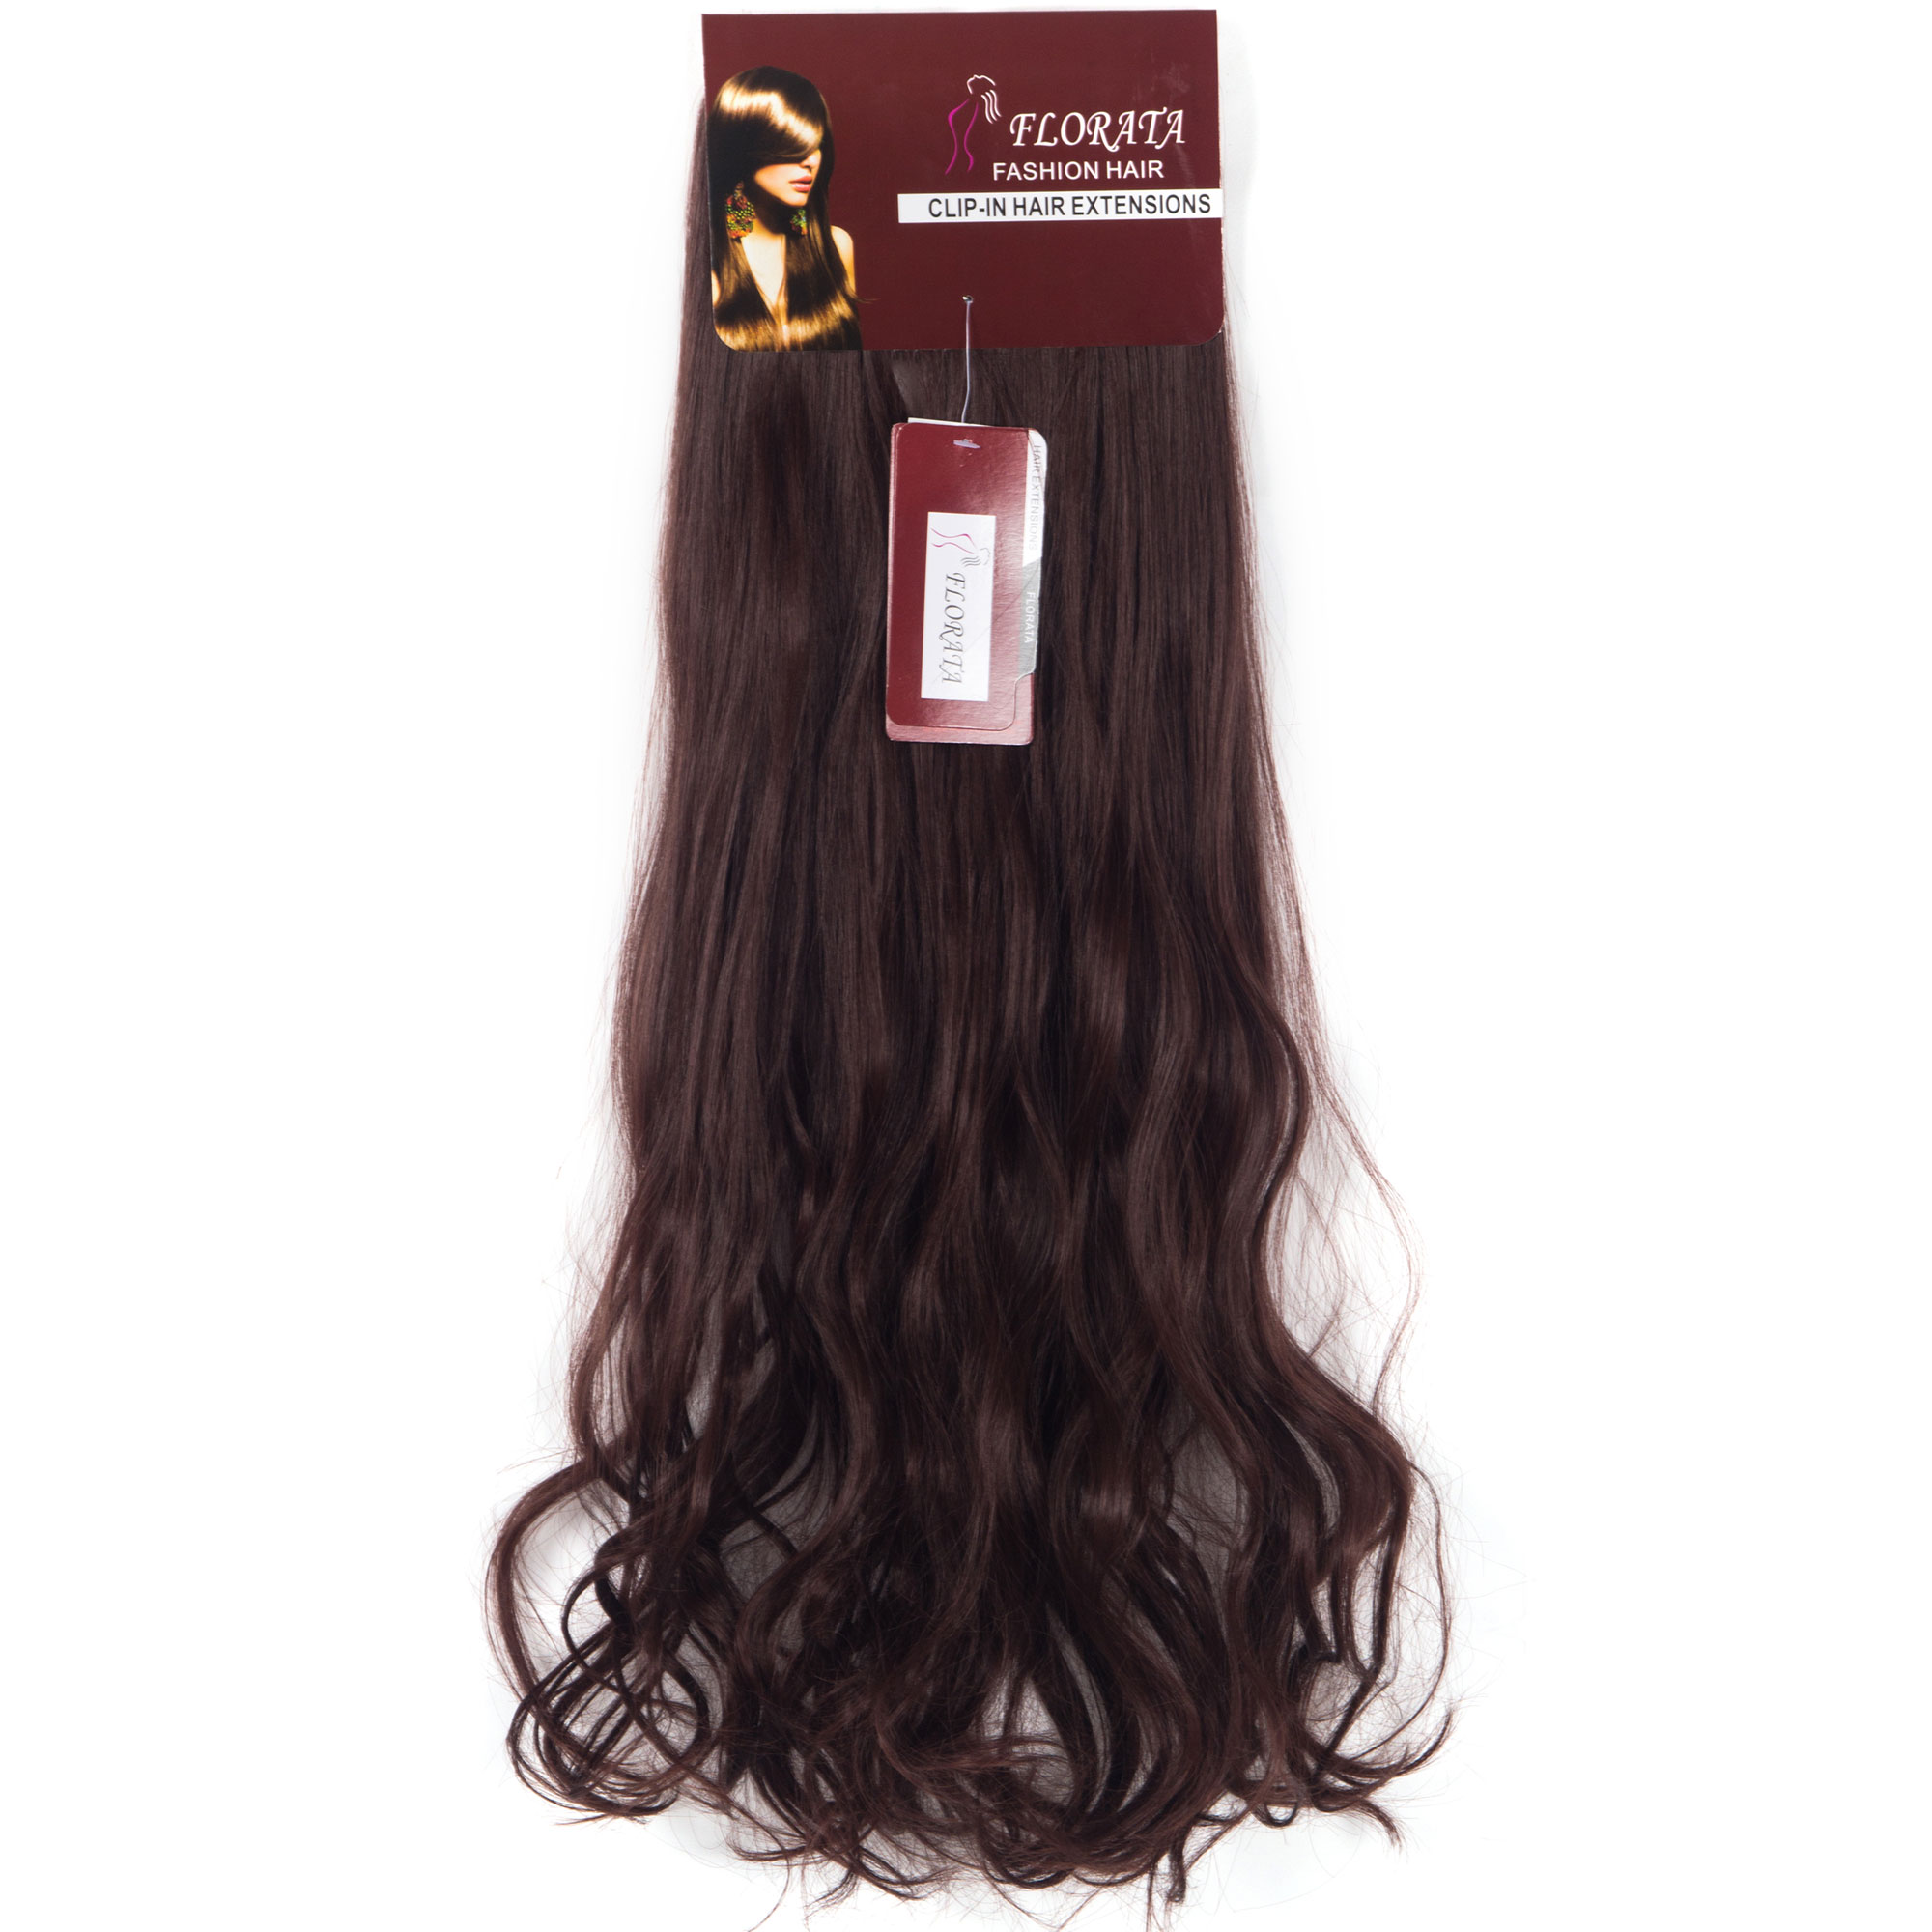 Florata 24 Women Curly Long Hair In Hair Extensions 8 Pieces 19